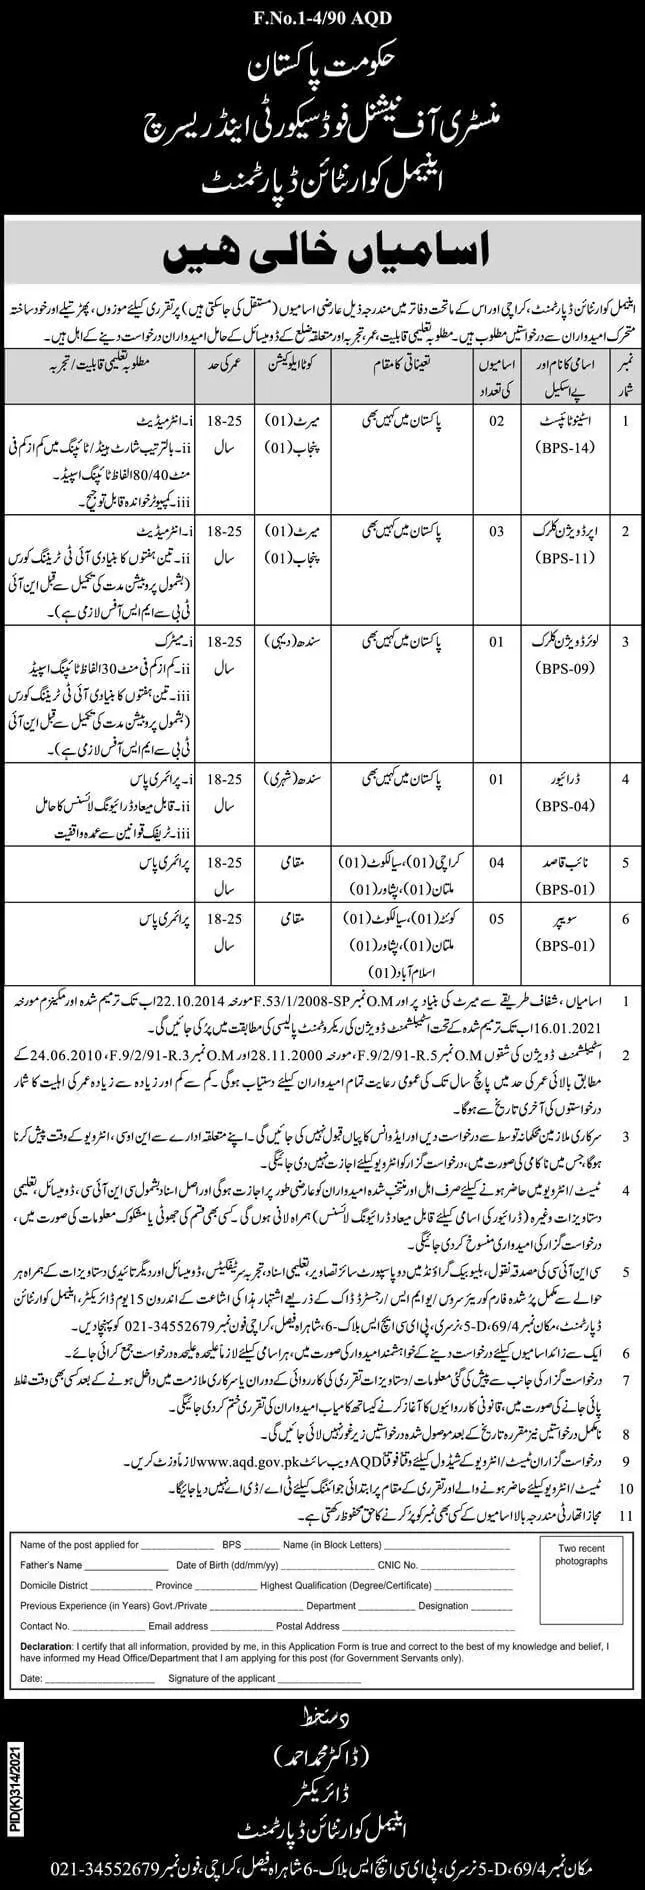 Govt of Sindh New Jobs At MNFSR Ministry of National Food Security and Research